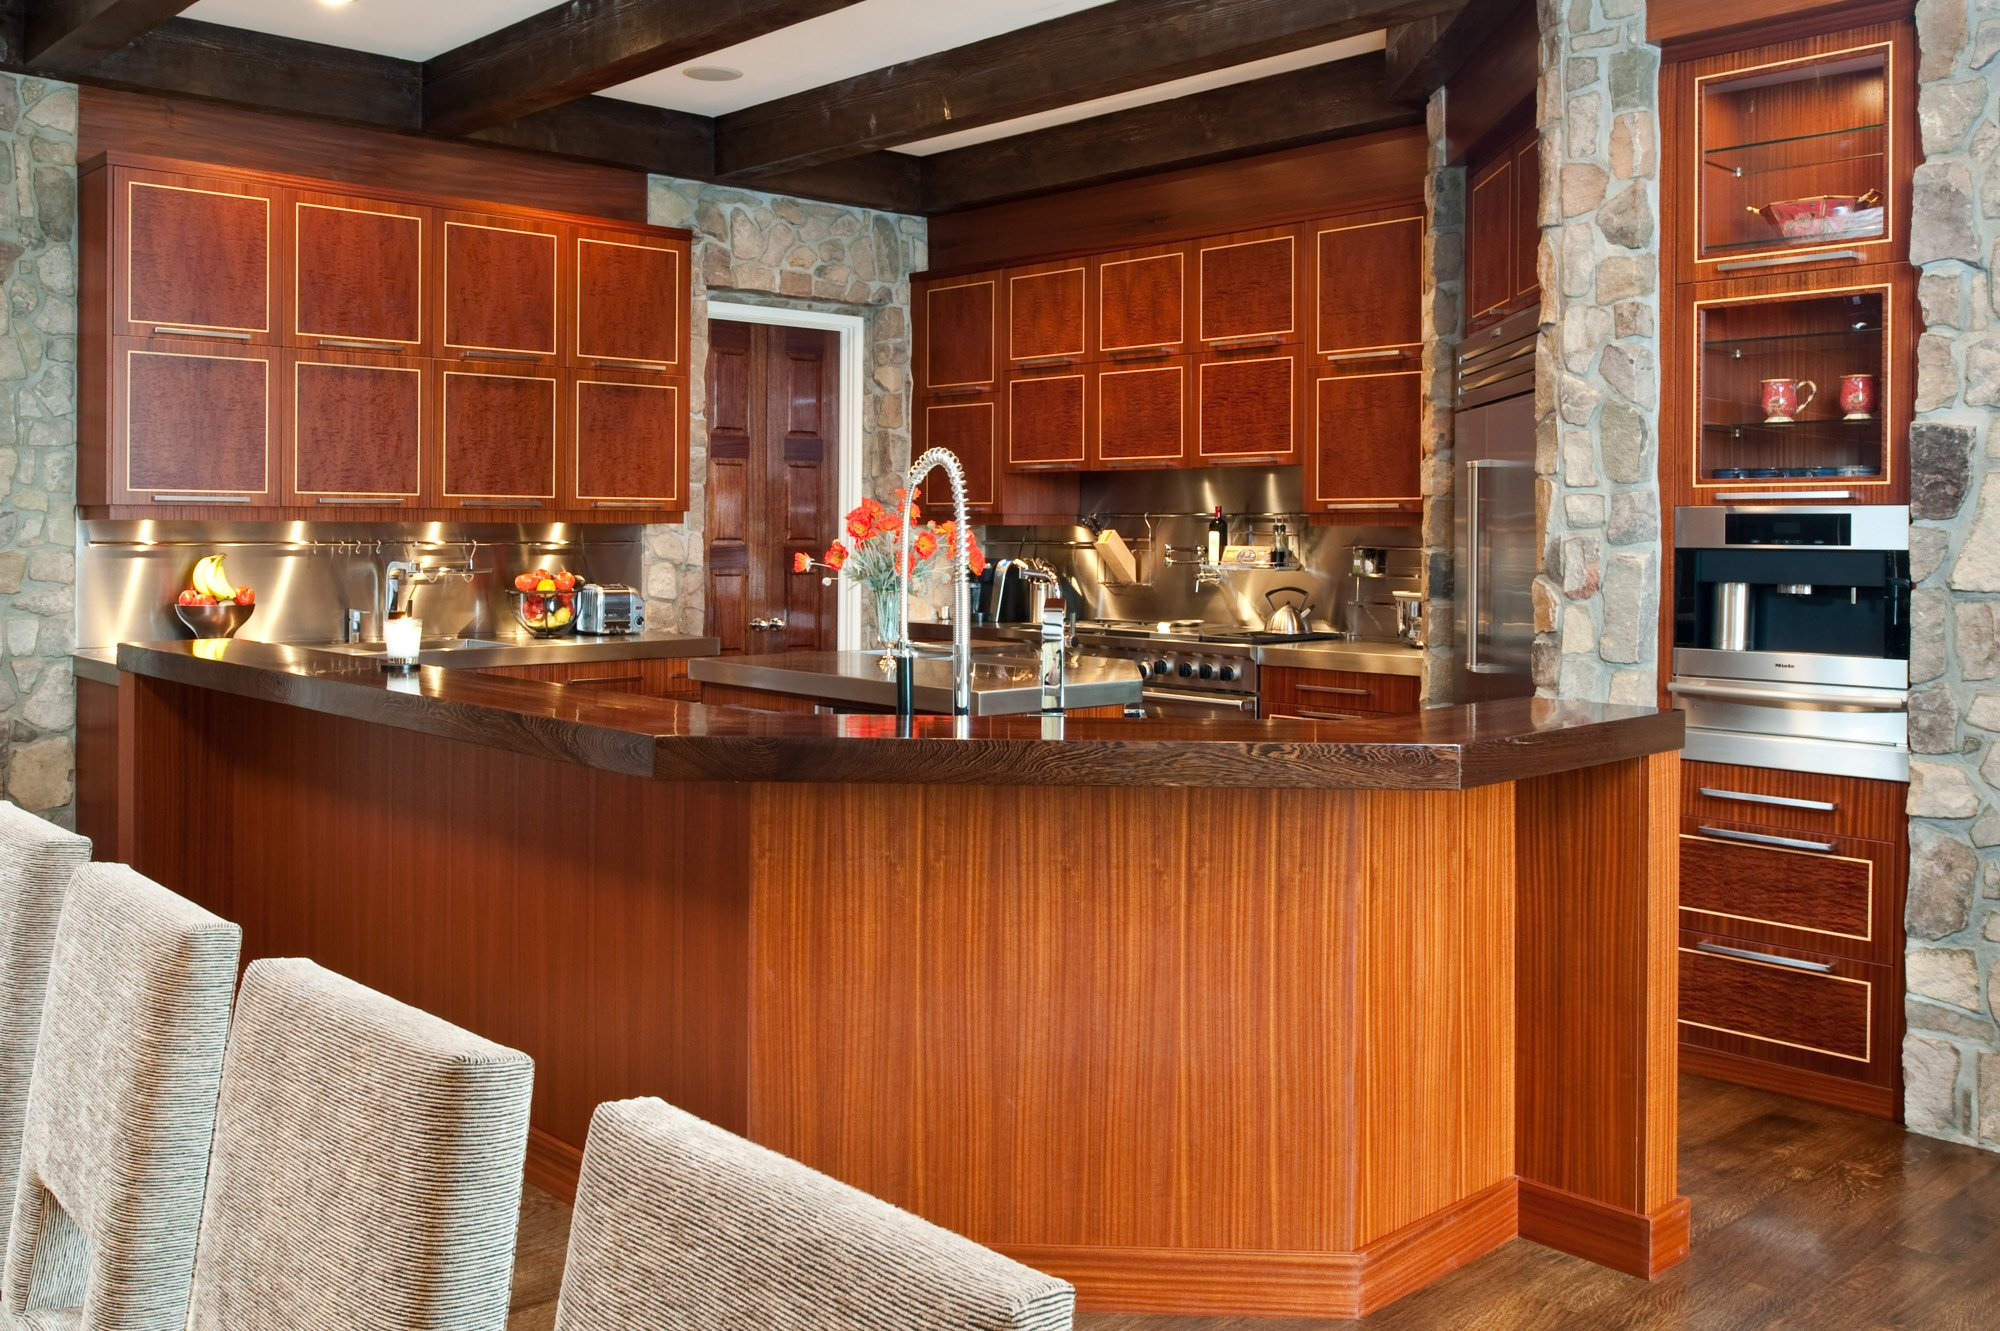 Manganaro, T&G- 2009- Kitchen- Neff Mahogany w Inlay- Contemporary- Wood breakfast bar top, coffee system, tall faucet- The Downs